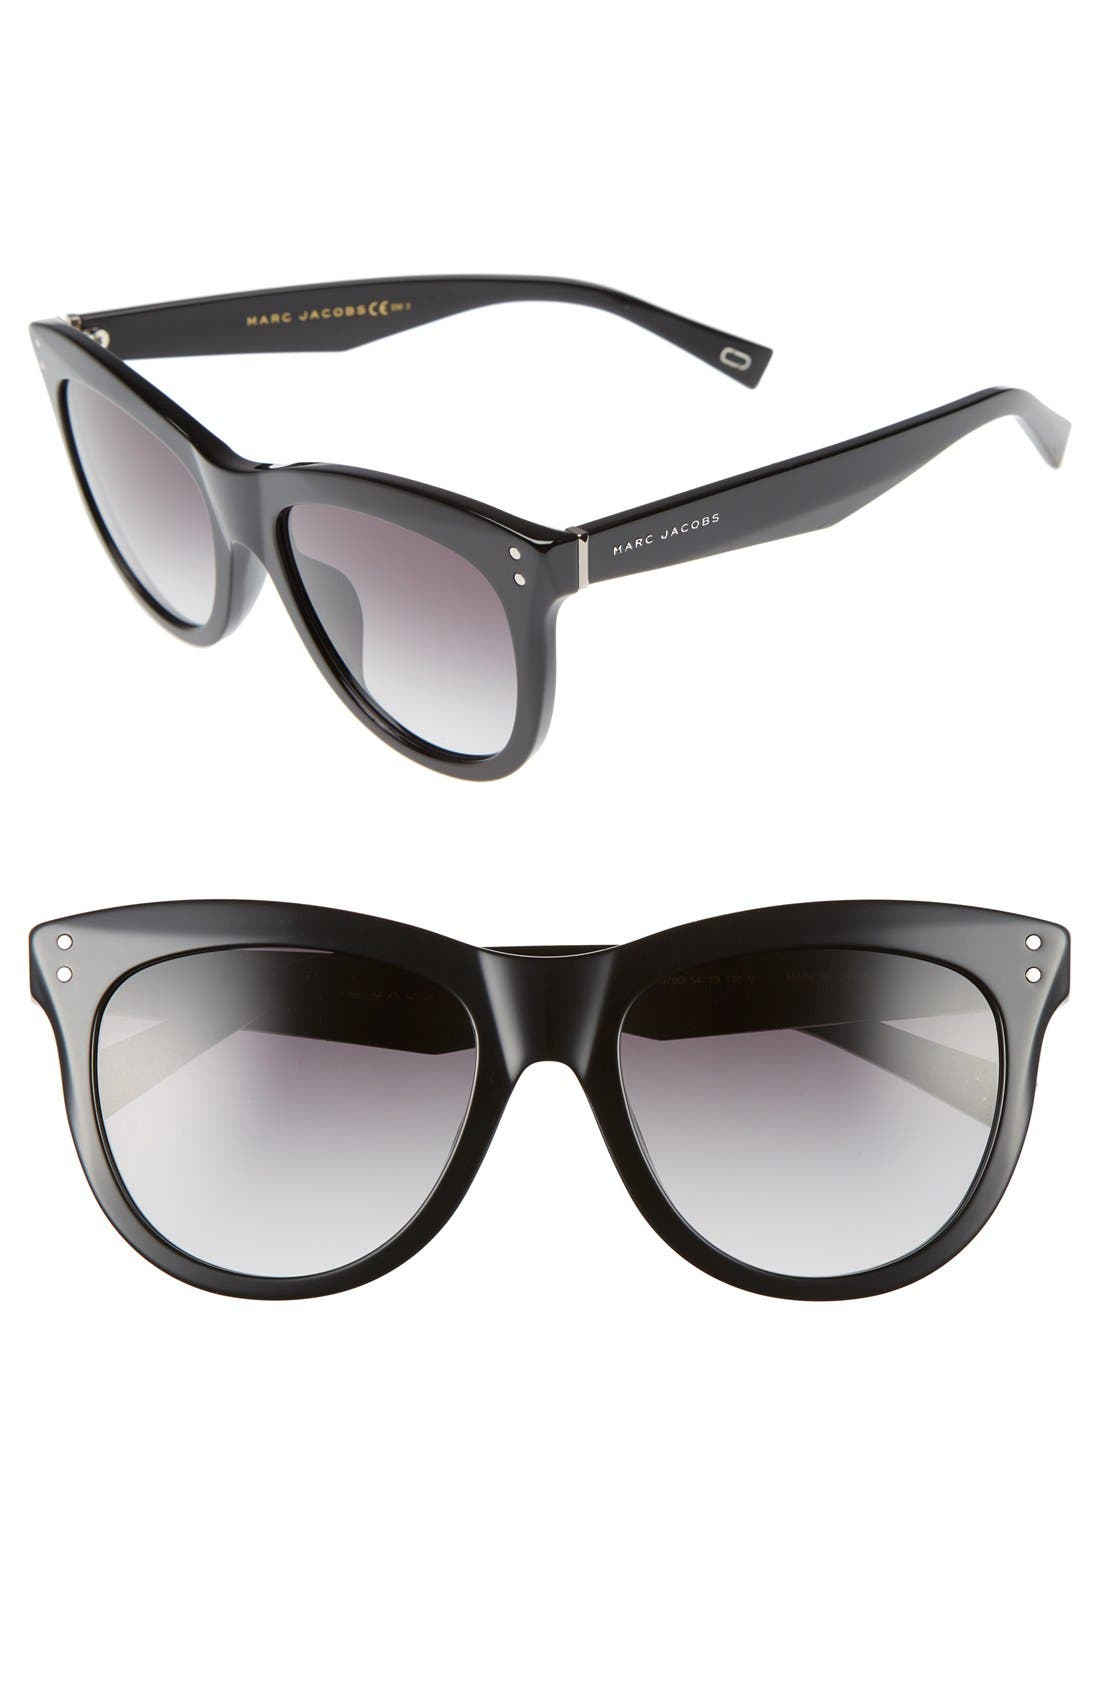 Main Image - MARC JACOBS 54mm Sunglasses